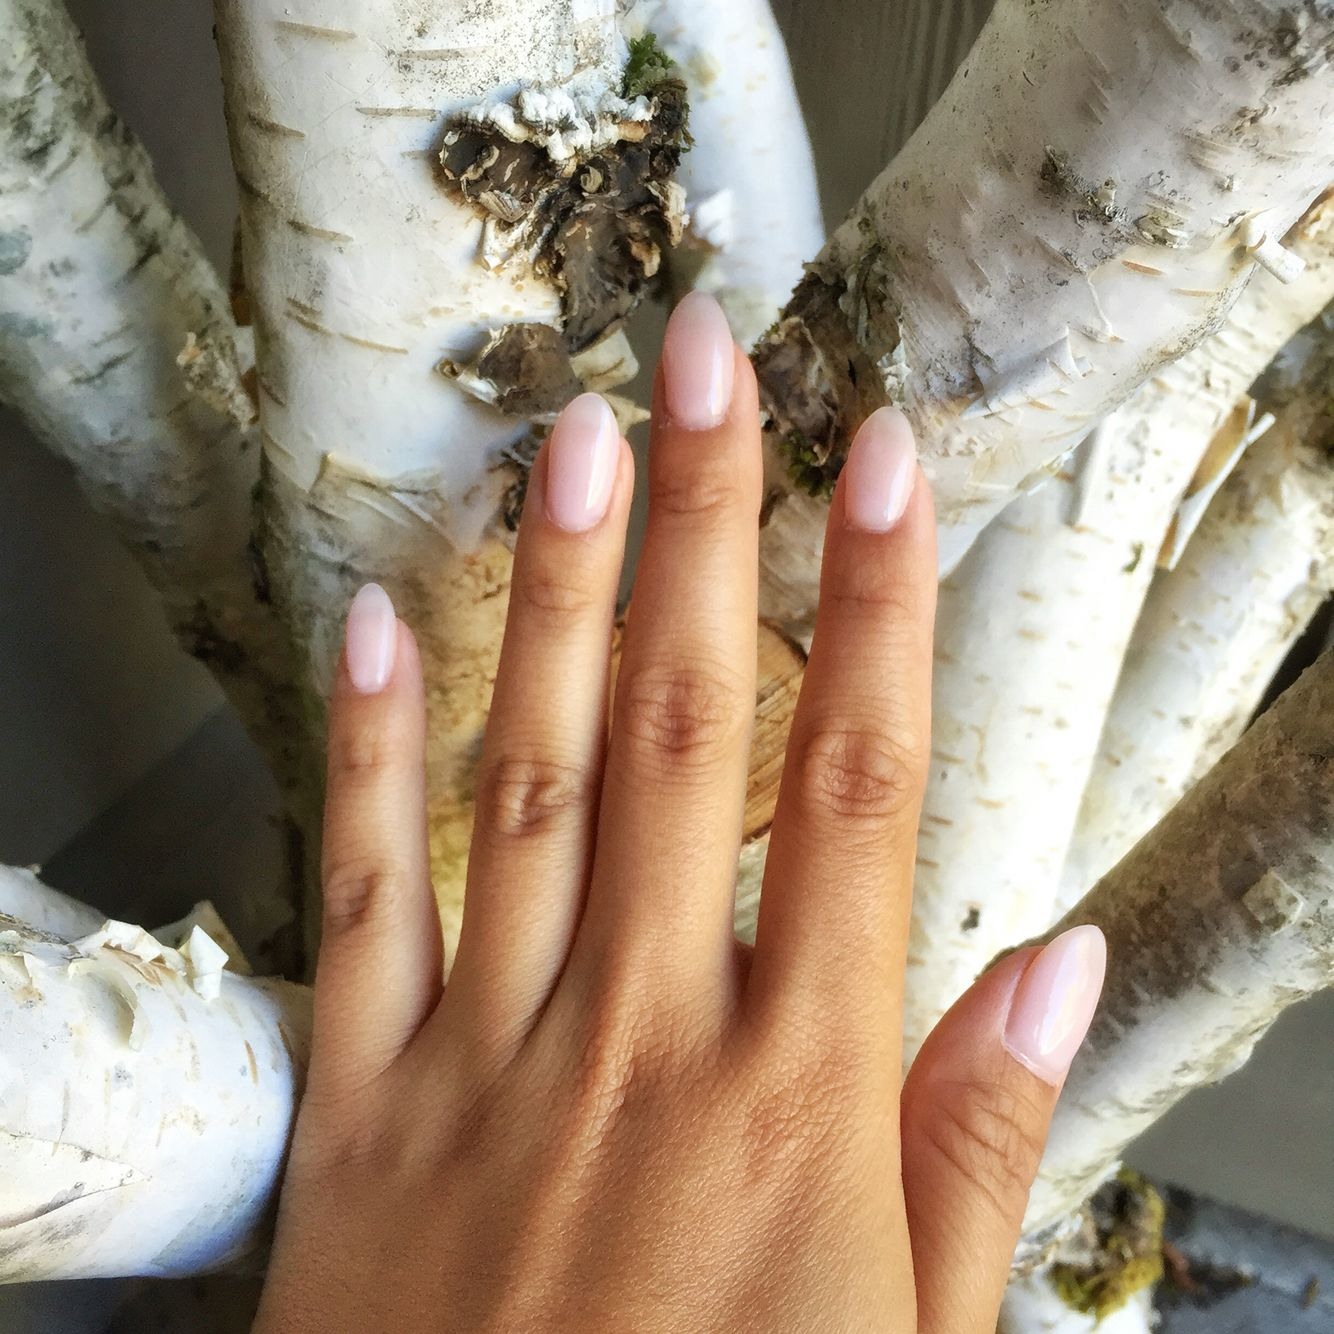 Almond Oval Acrylic Nails Natural Pink Gel Polish Short Acrylics Natural Looking Acrylic Nails Oval Acrylic Nails Almond Nails Designs